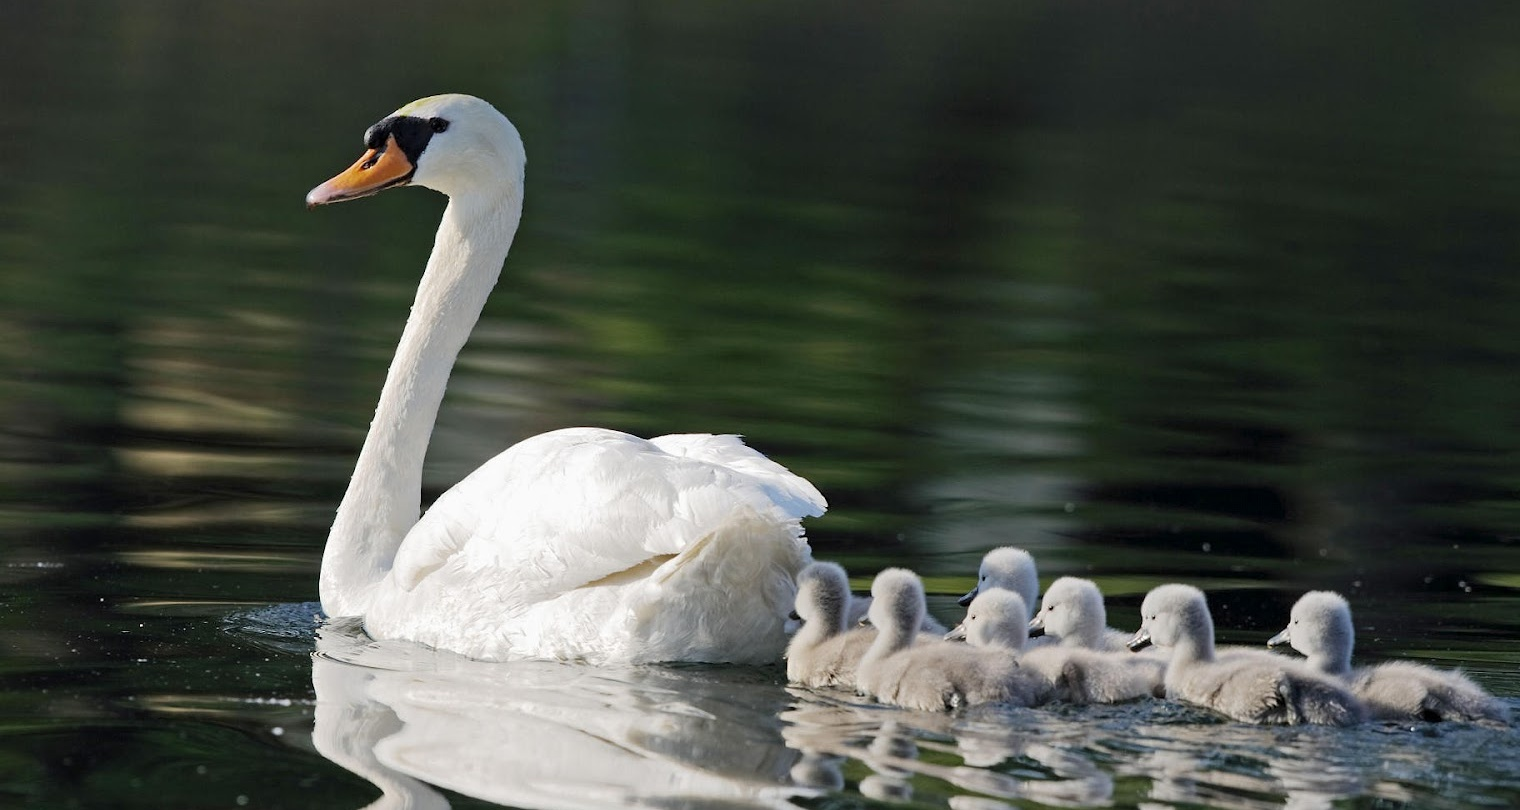 mother-swan-with-young-swans-hd-animal-wallpaper-swans.jpg